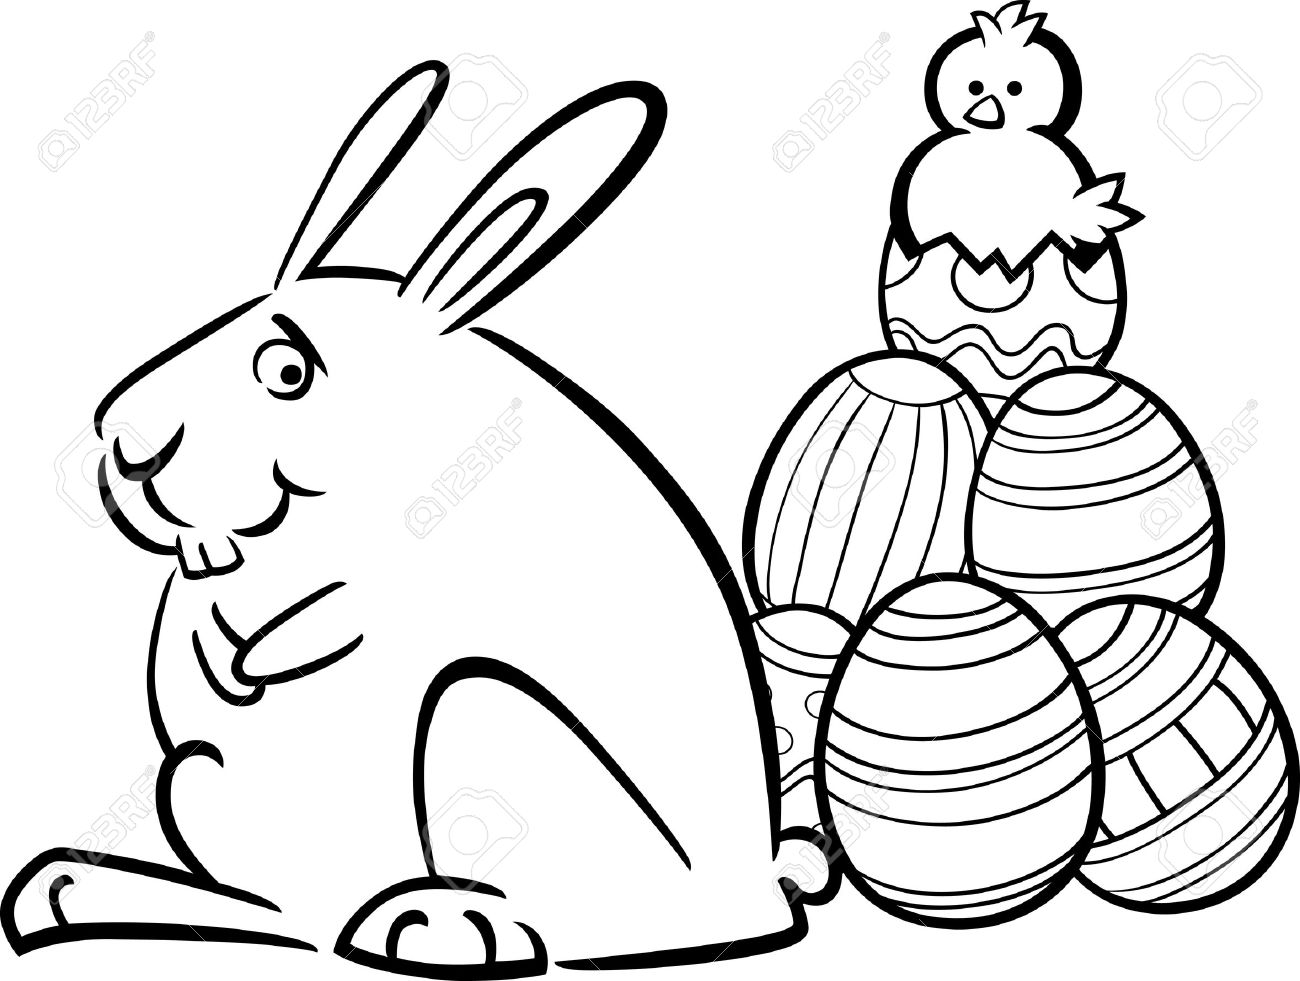 Easter Bunny Silhouette At Getdrawings